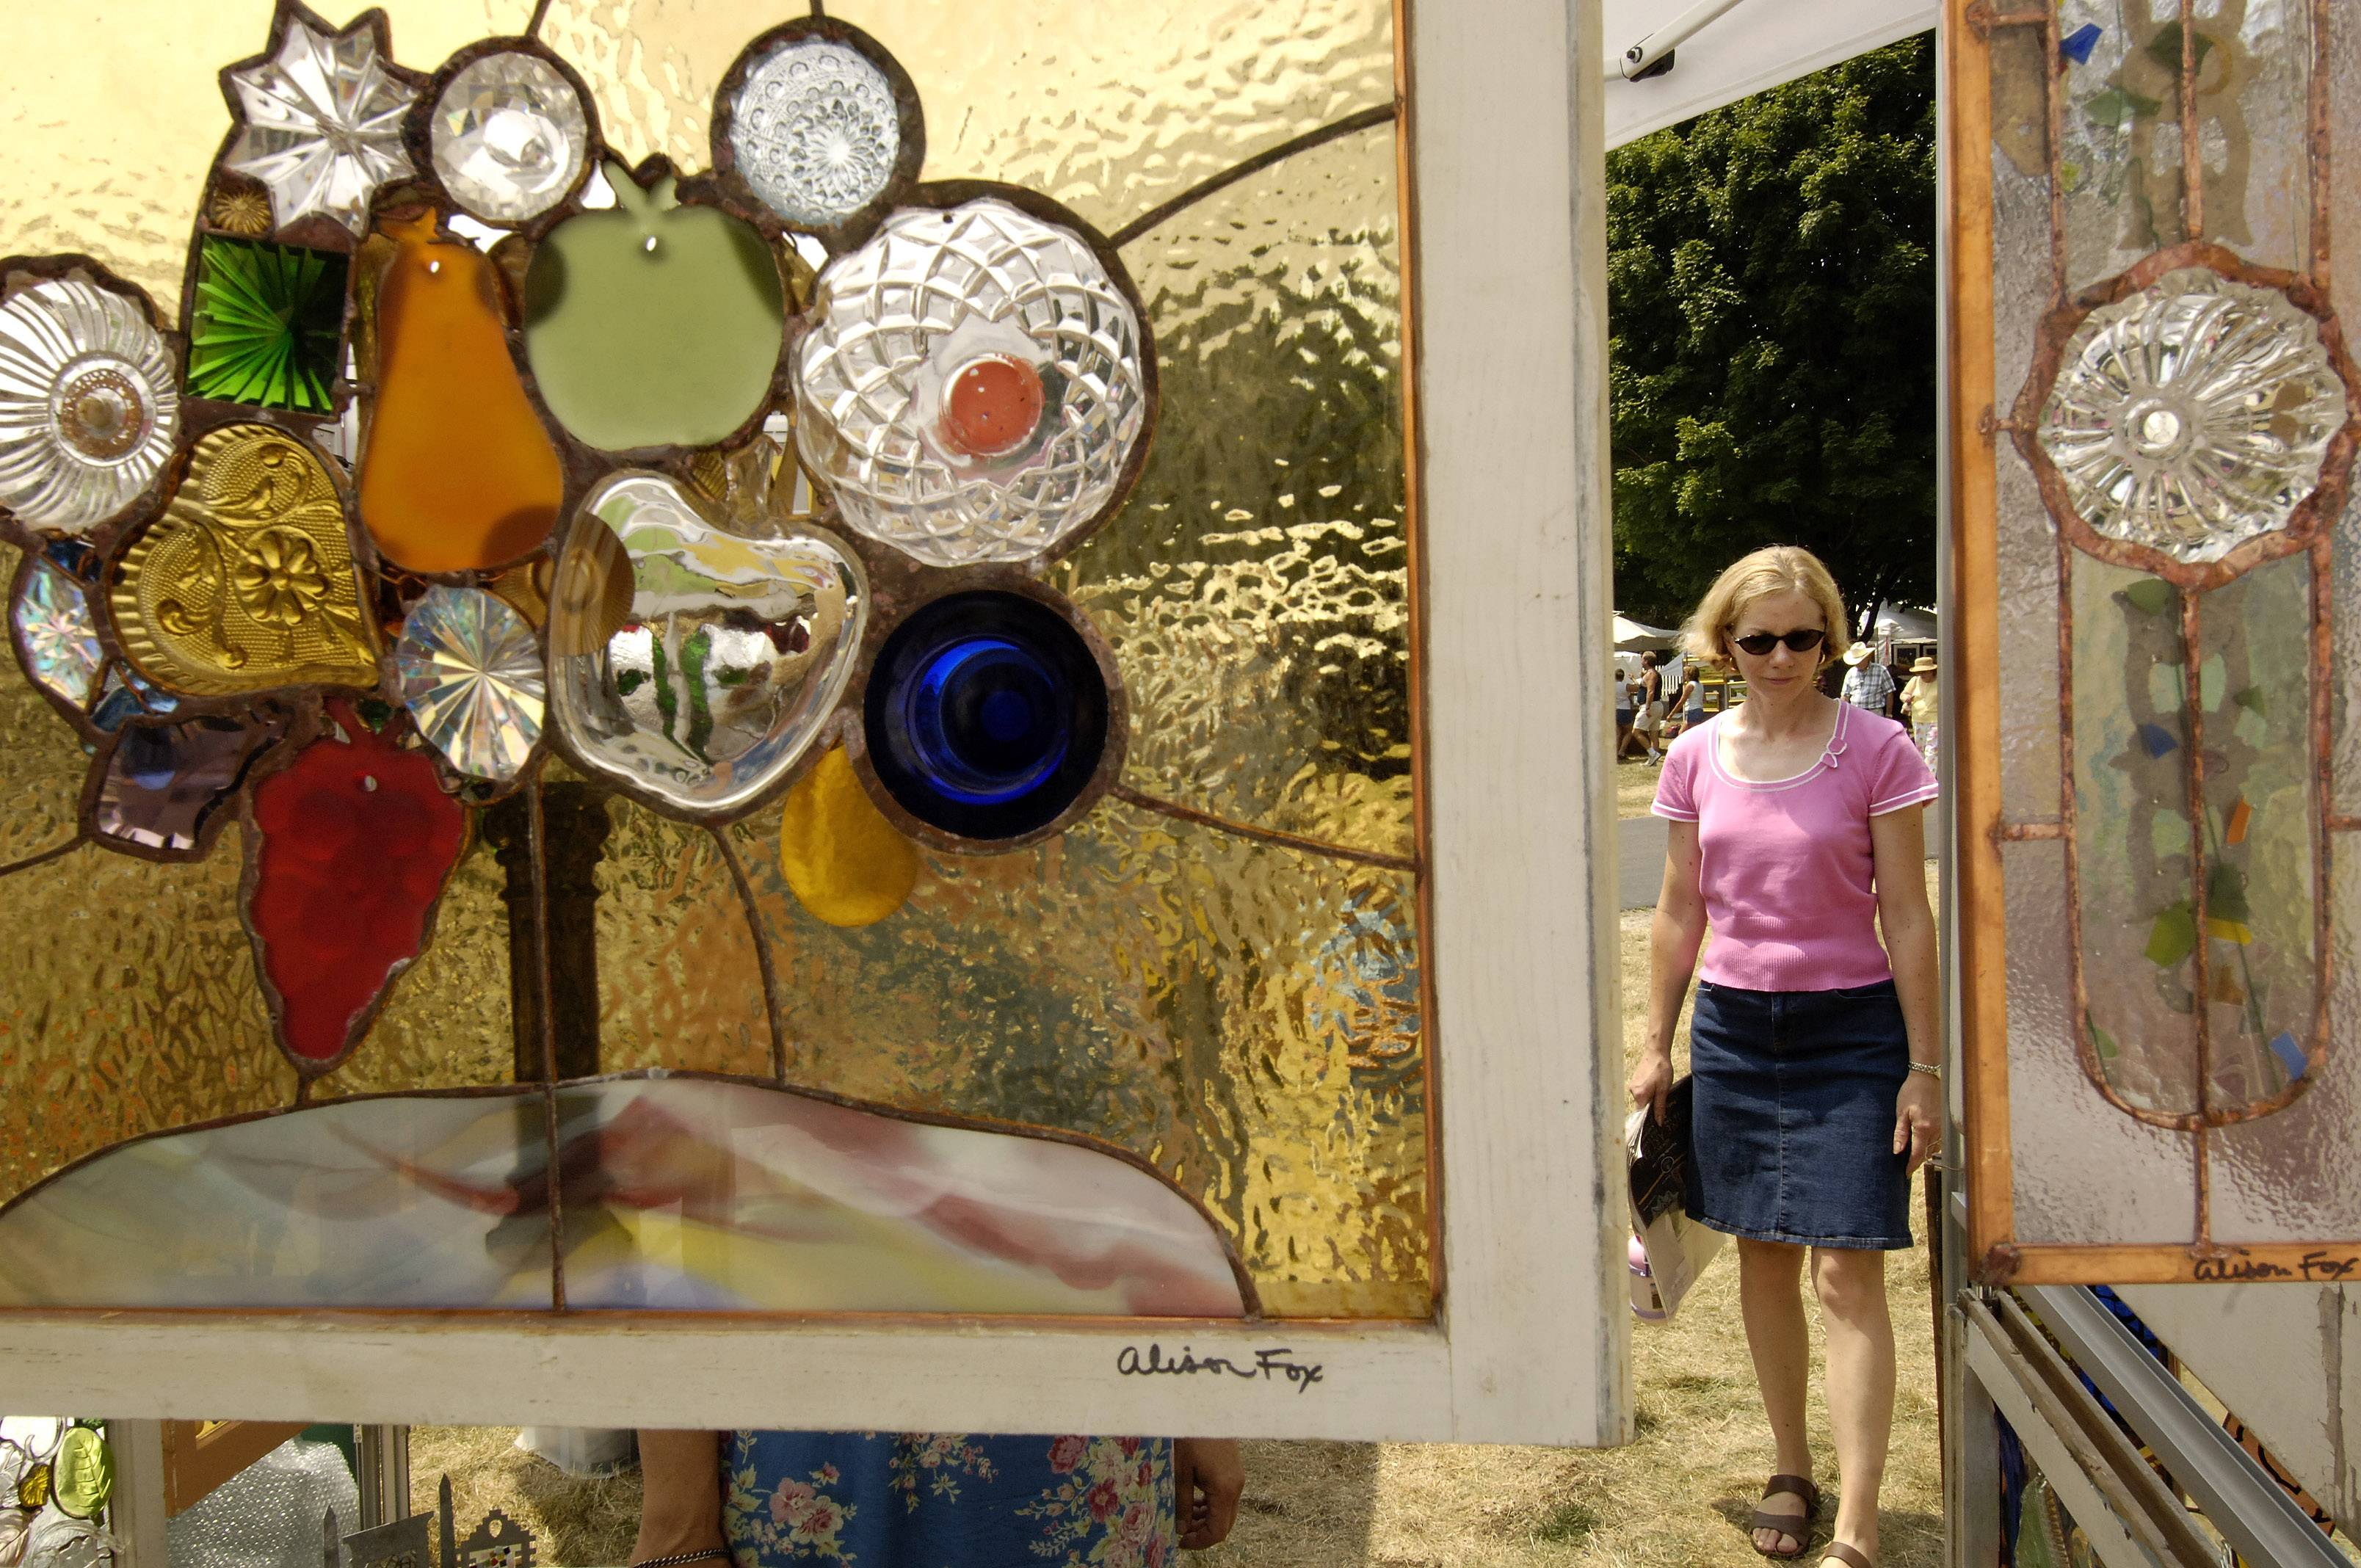 Artwork in glass, photography, painting, drawing and many more media will be available for viewing and sale Saturday and Sunday during the Naperville Woman's Club's 55th annual Juried Art Fair at Naper Settlement.